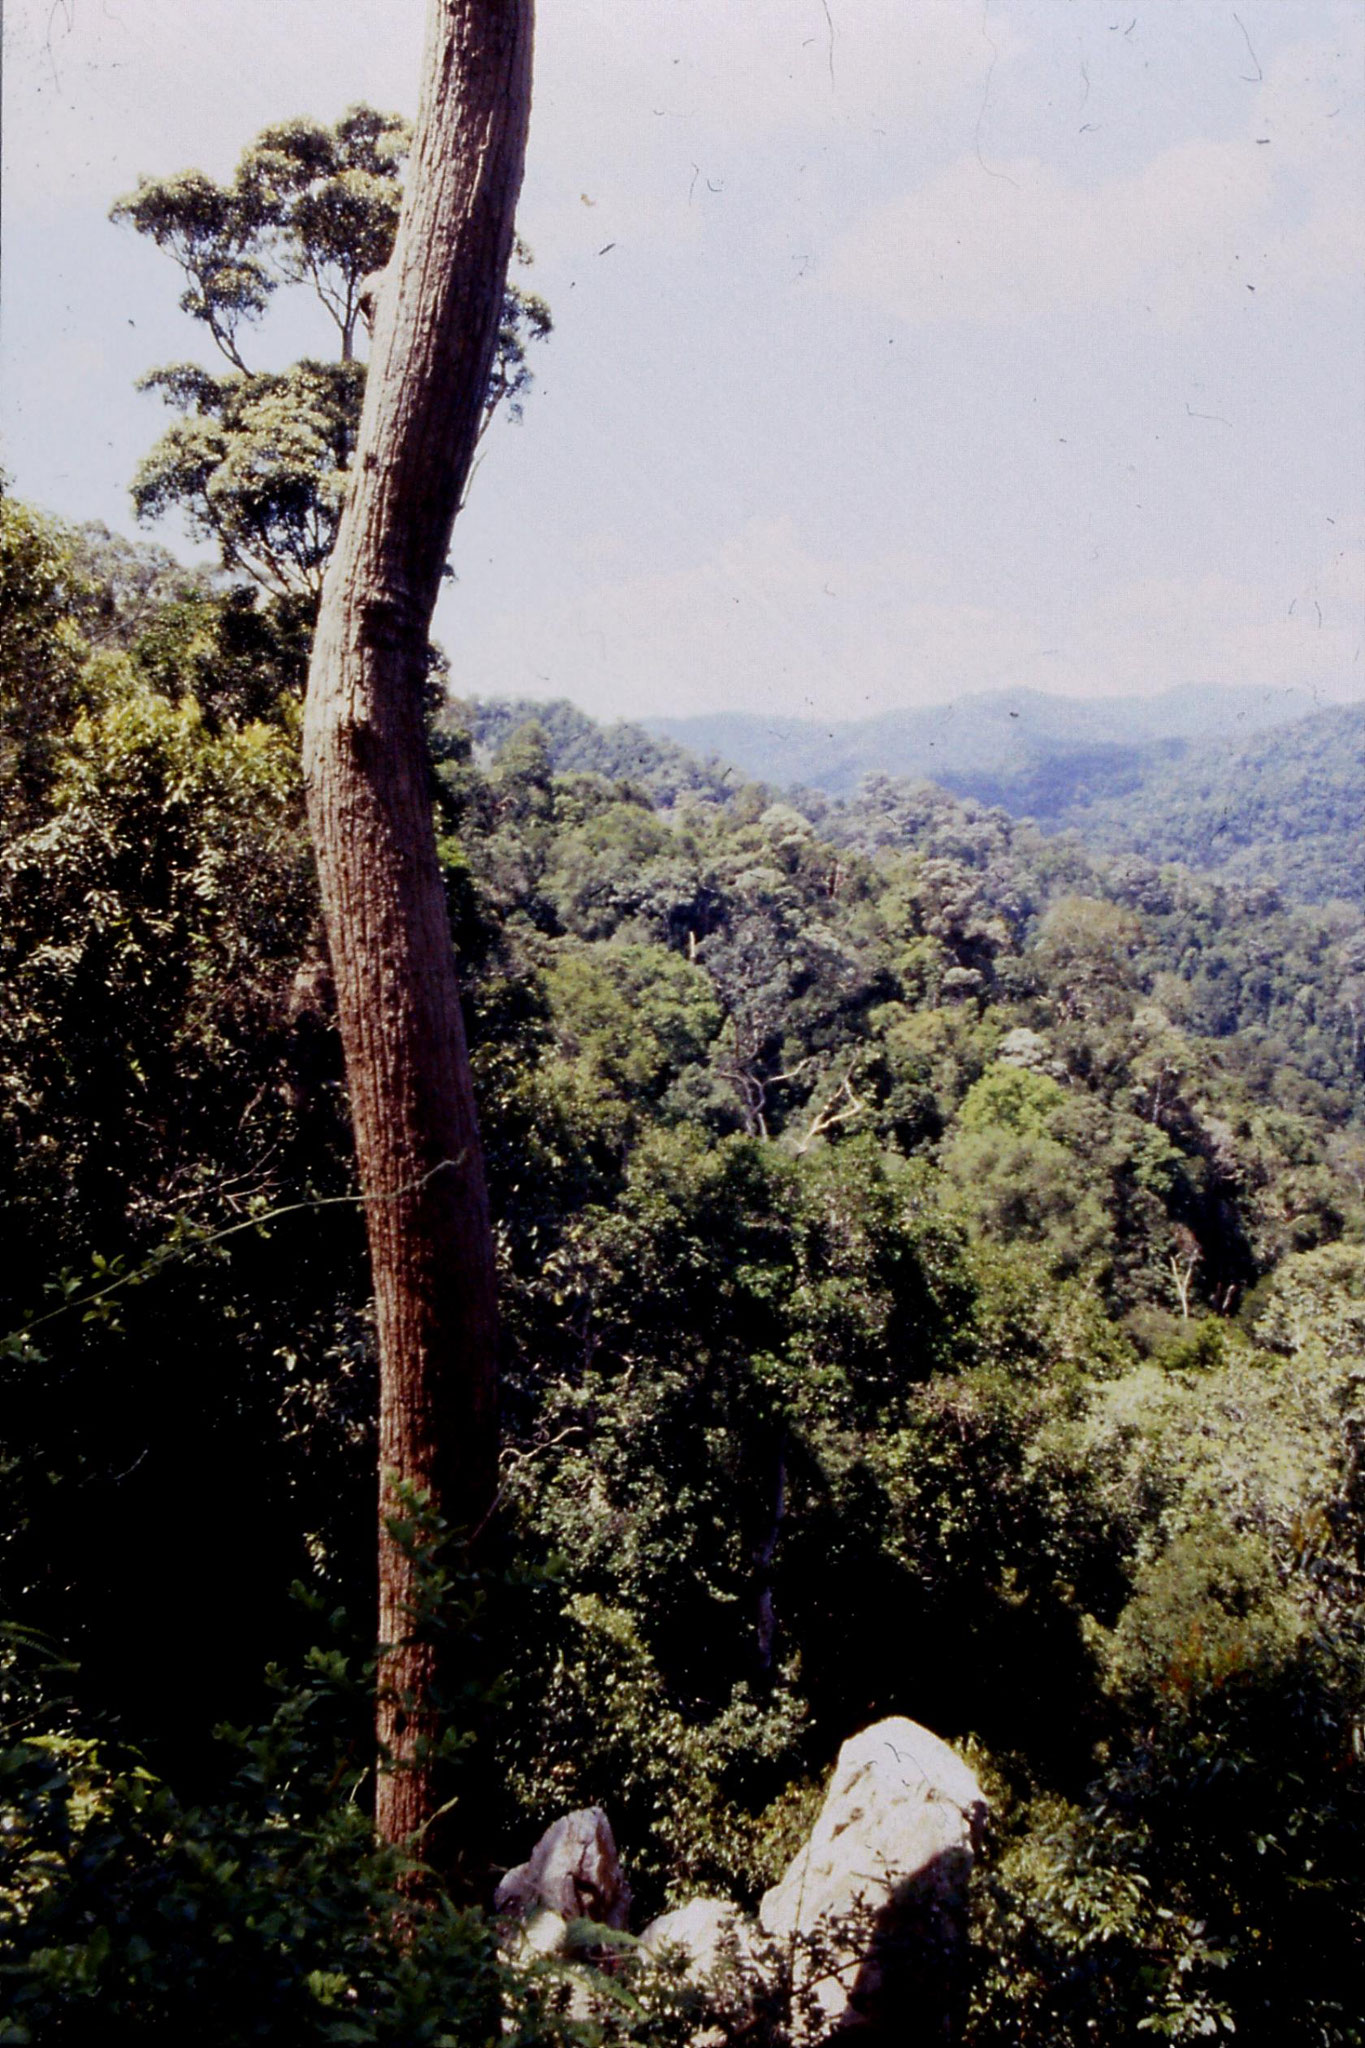 23/6/1990: 4: Tamen Negara looking NE up Sungai Tembeling valley from ridge at 1130ft